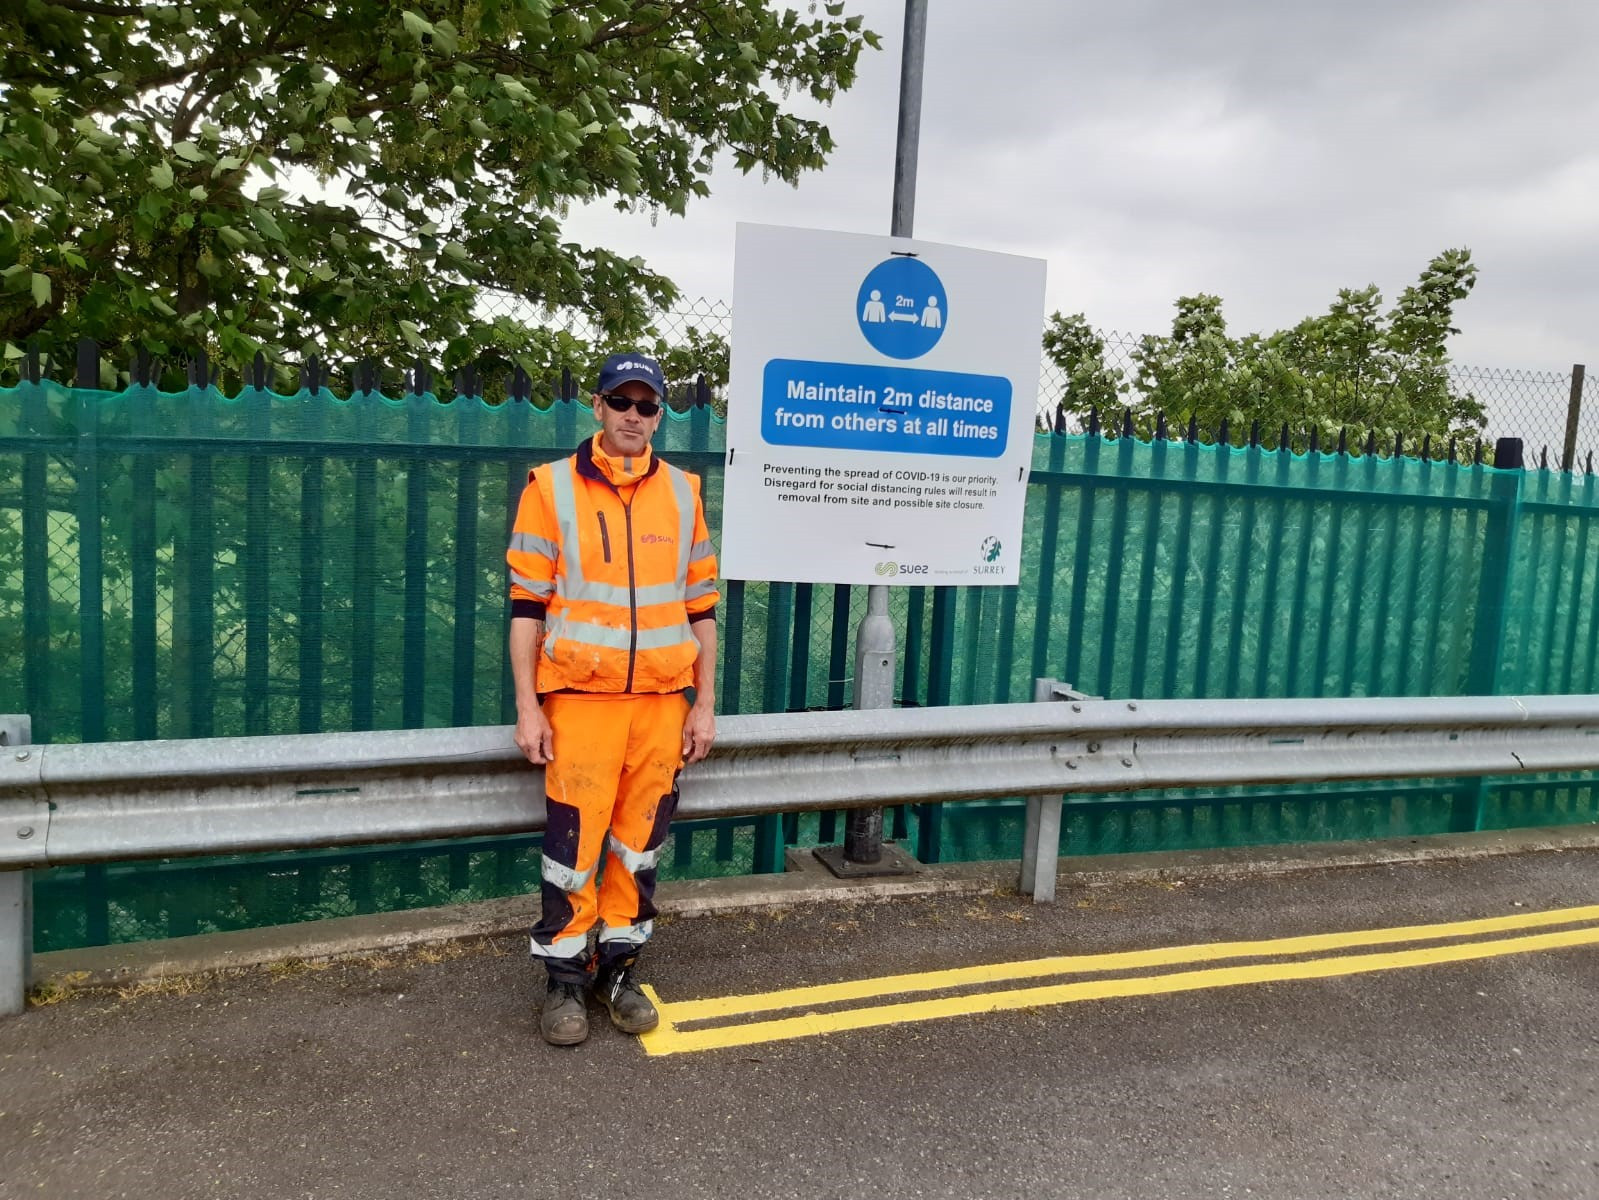 Surrey Recycling Centres - maintain 2m distance